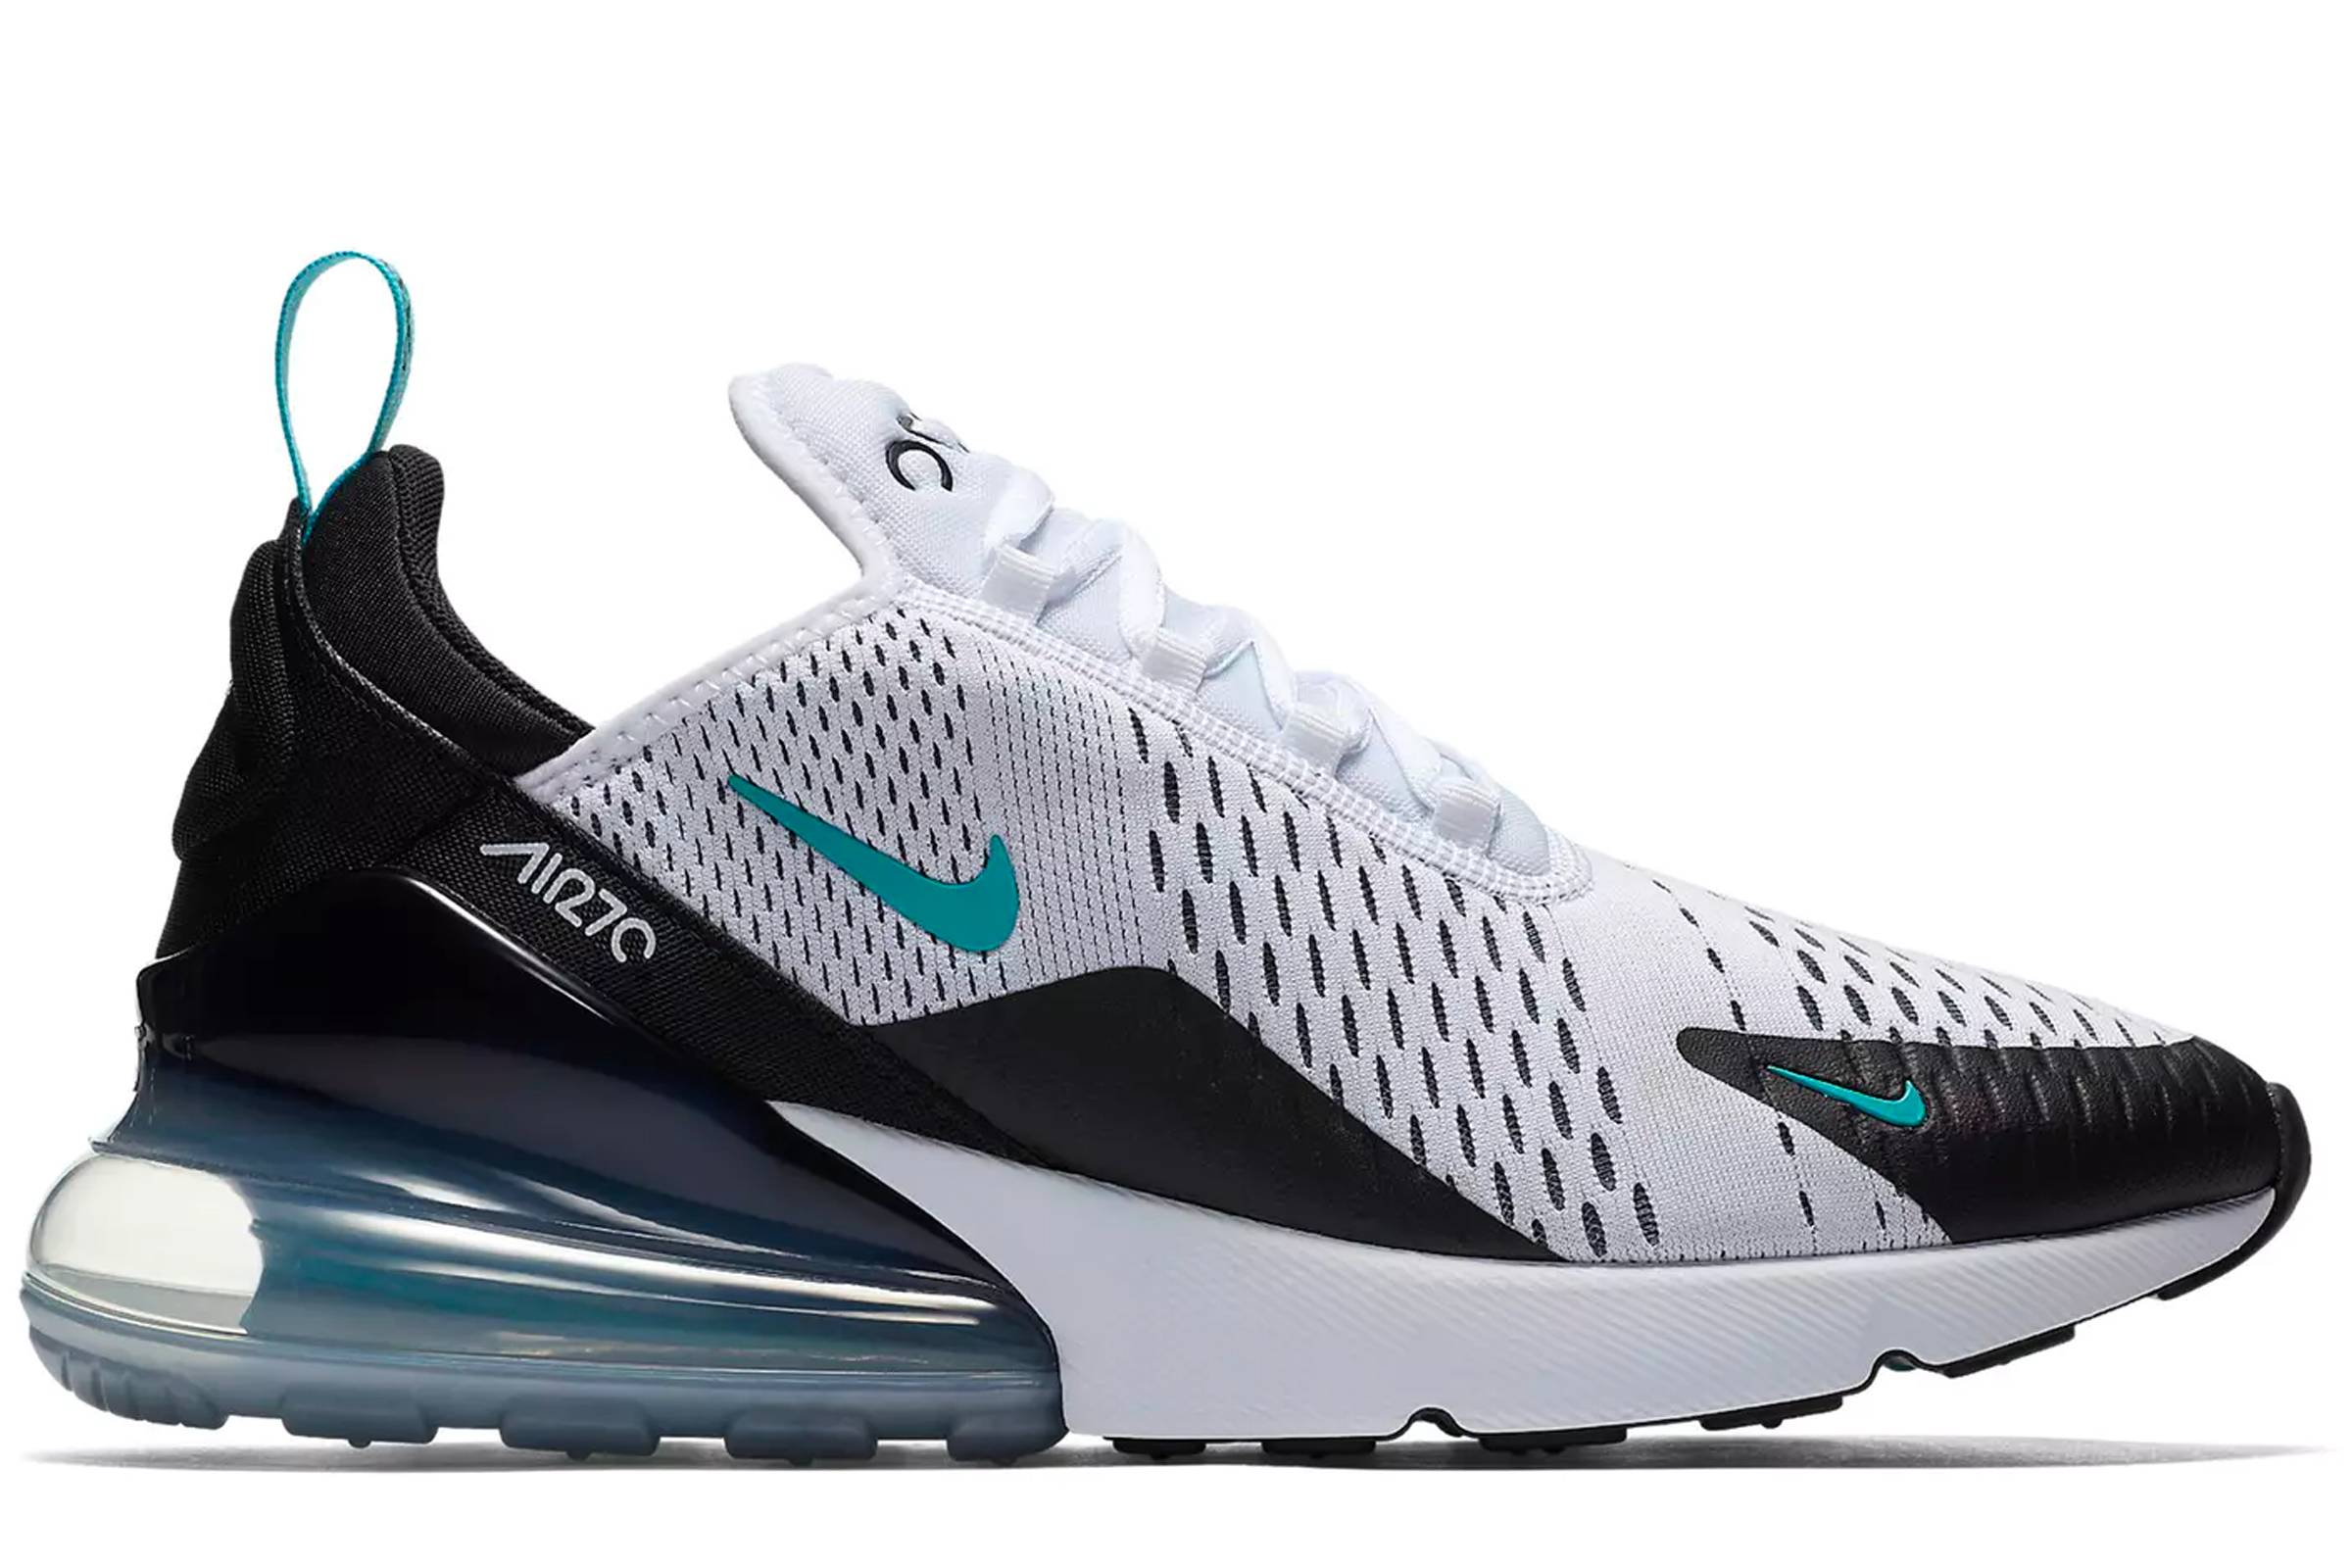 357d9f4f54 Air Max 270 Dusty Cactus (inspired by the Air Max 93's original release  Dusty Cactus colorway)